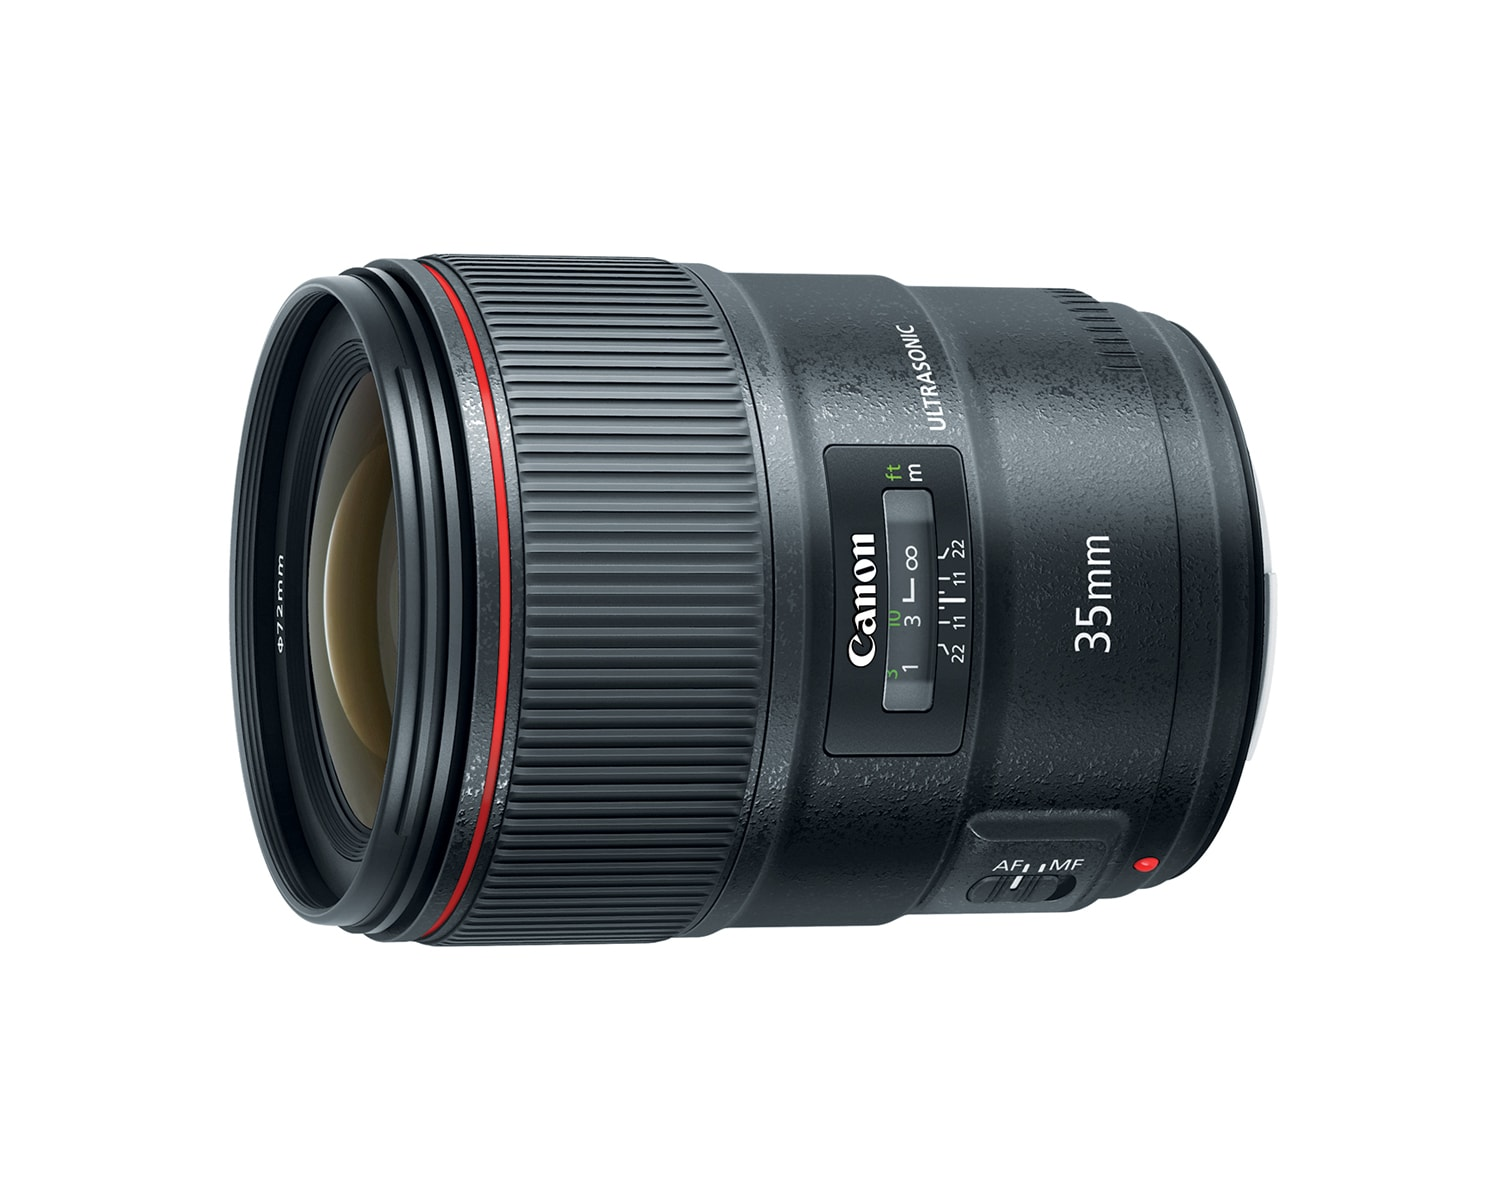 Canon EF 35mm Prime Lens Unveiled